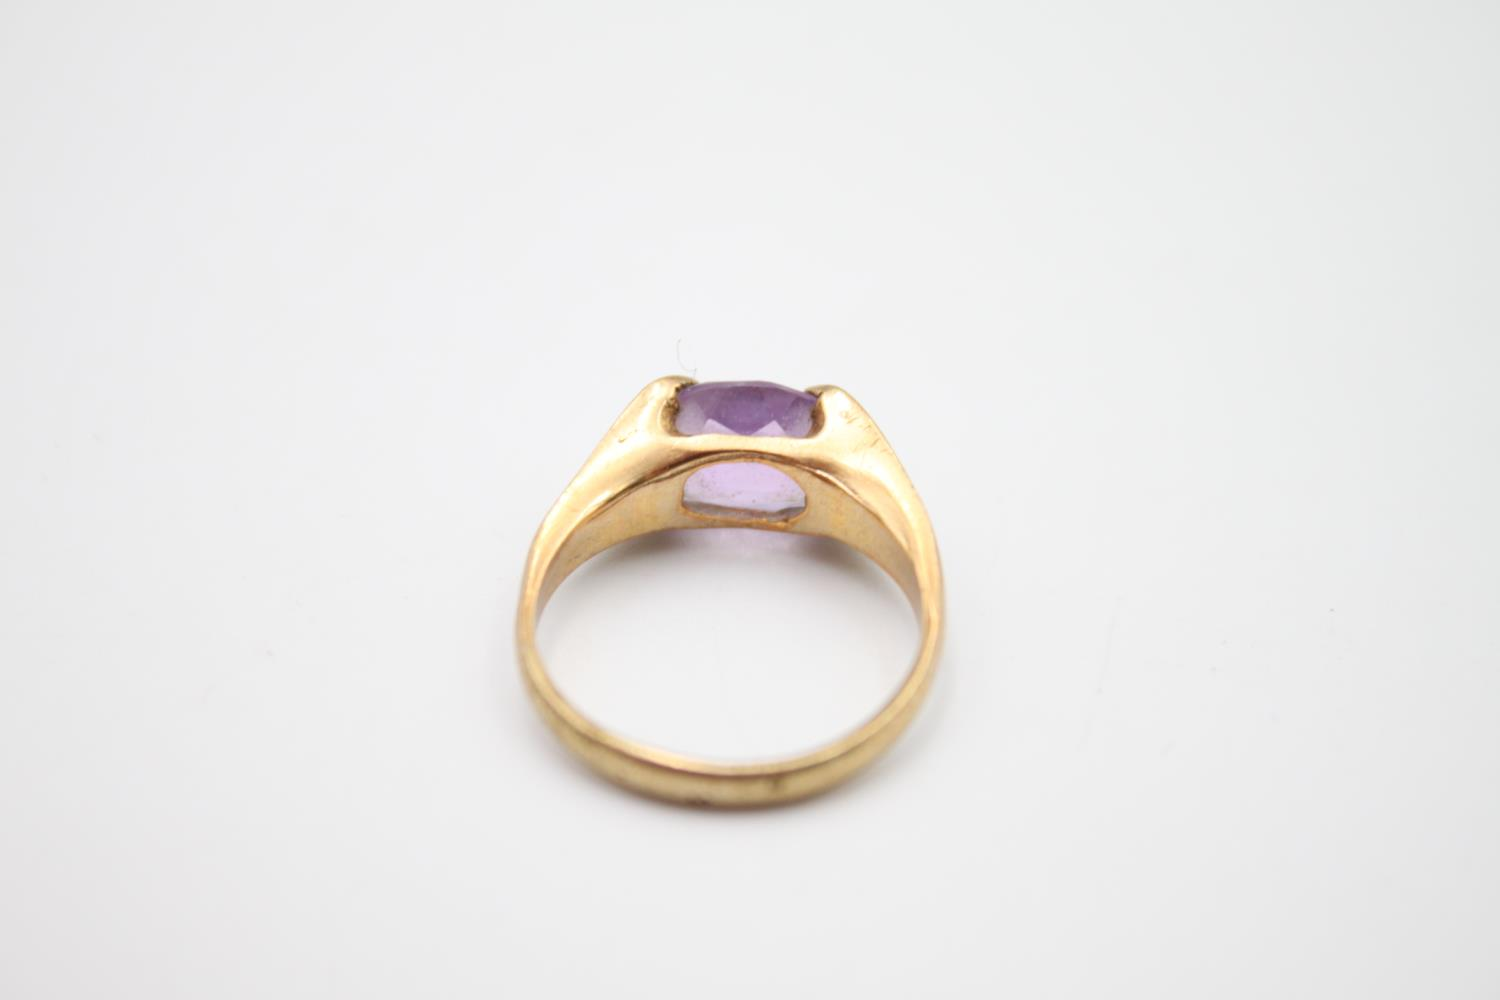 2 x 9ct gold amethyst rings inc modernist, solitaire 4.6g Size L & N - Image 4 of 6